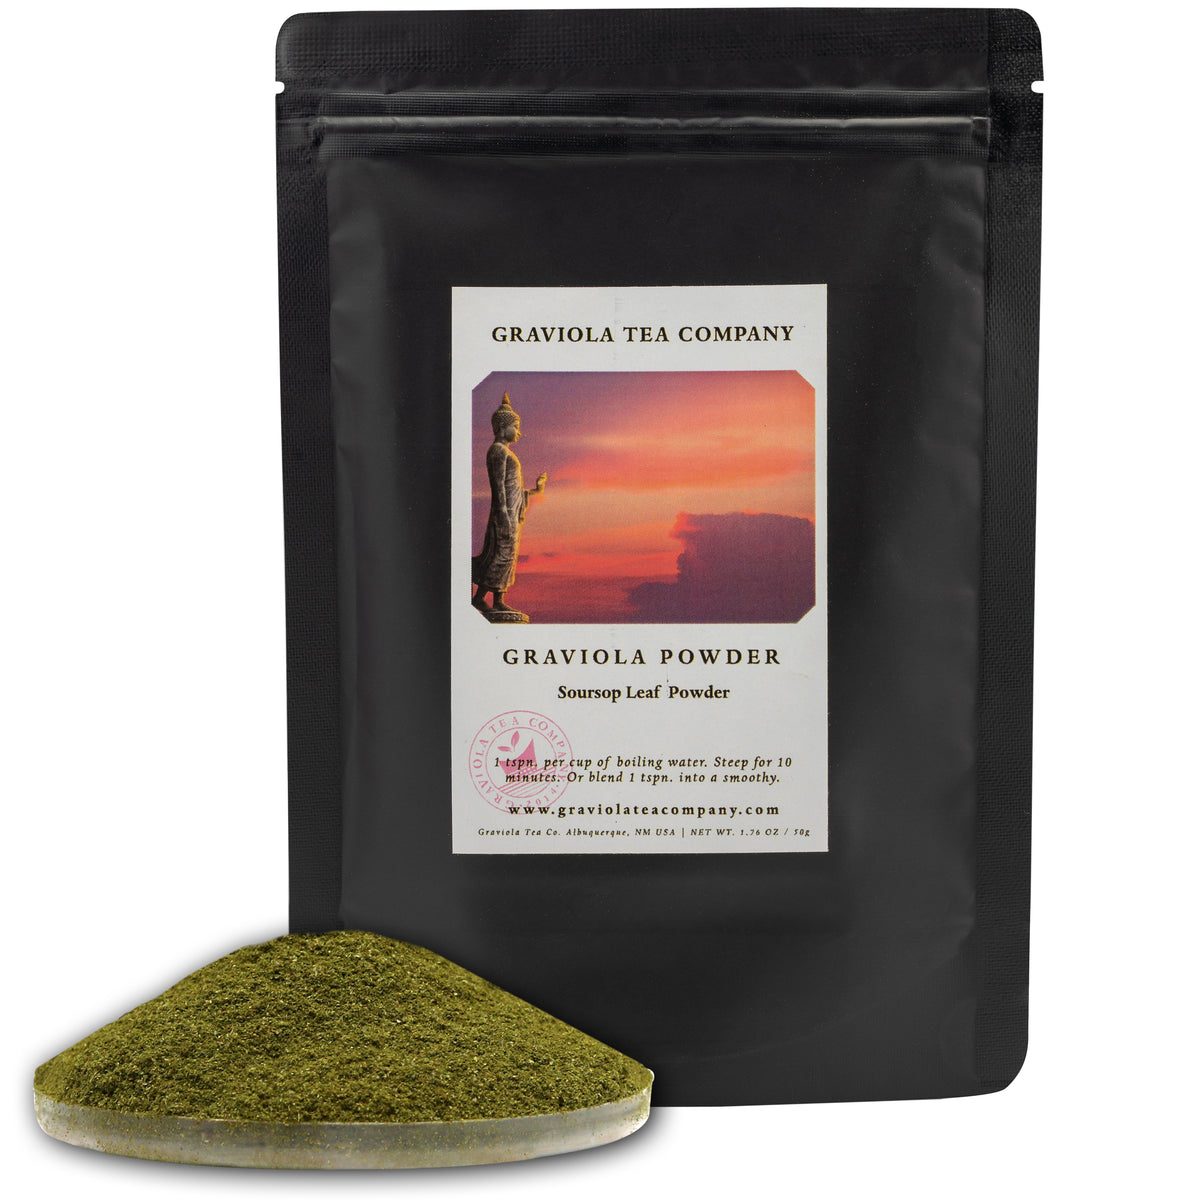 Graviola Powder - 100% soursop powder